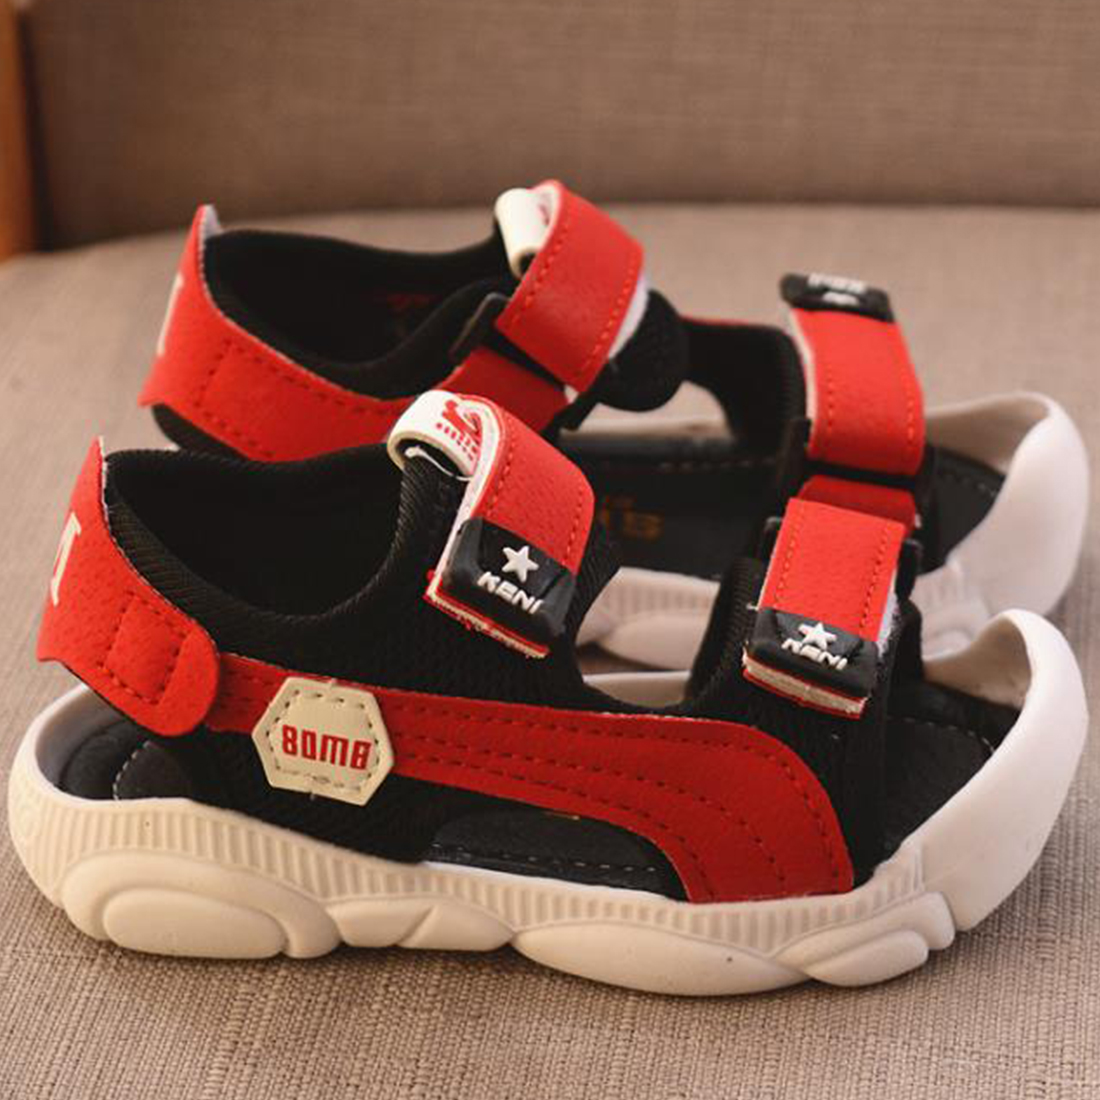 Kids Sneakers Boy Soft Soled Beach Sandals Baby Toddler Anti-slippery Summer Breathable Shoes Fashionable Design